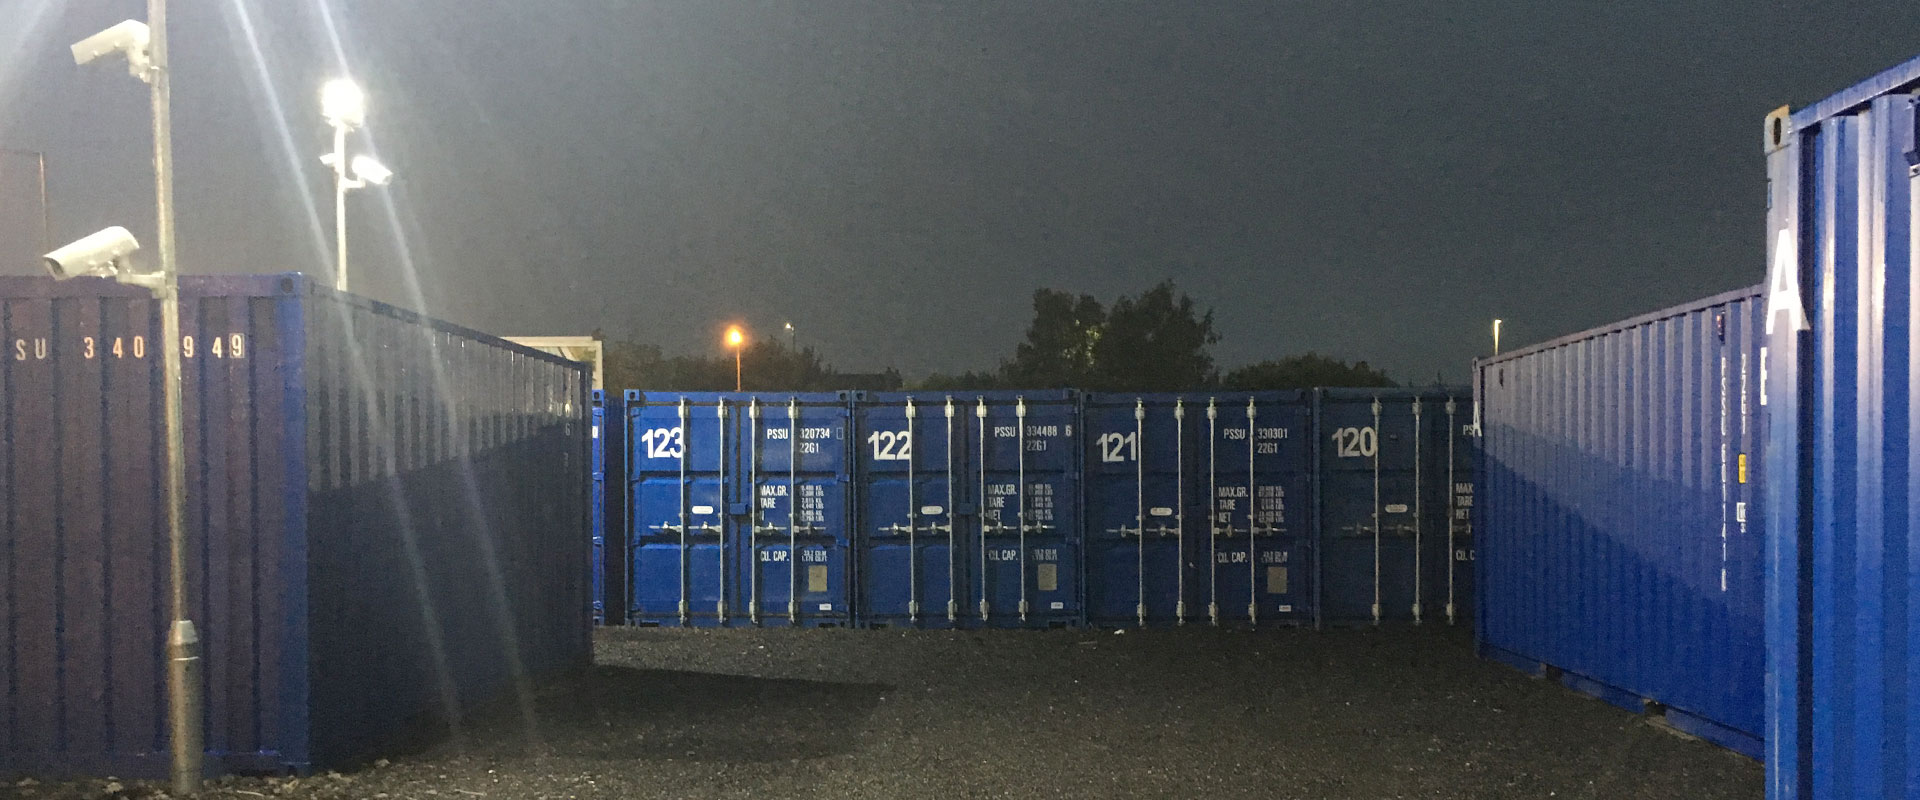 Robinsons Self Storage units under floodlights